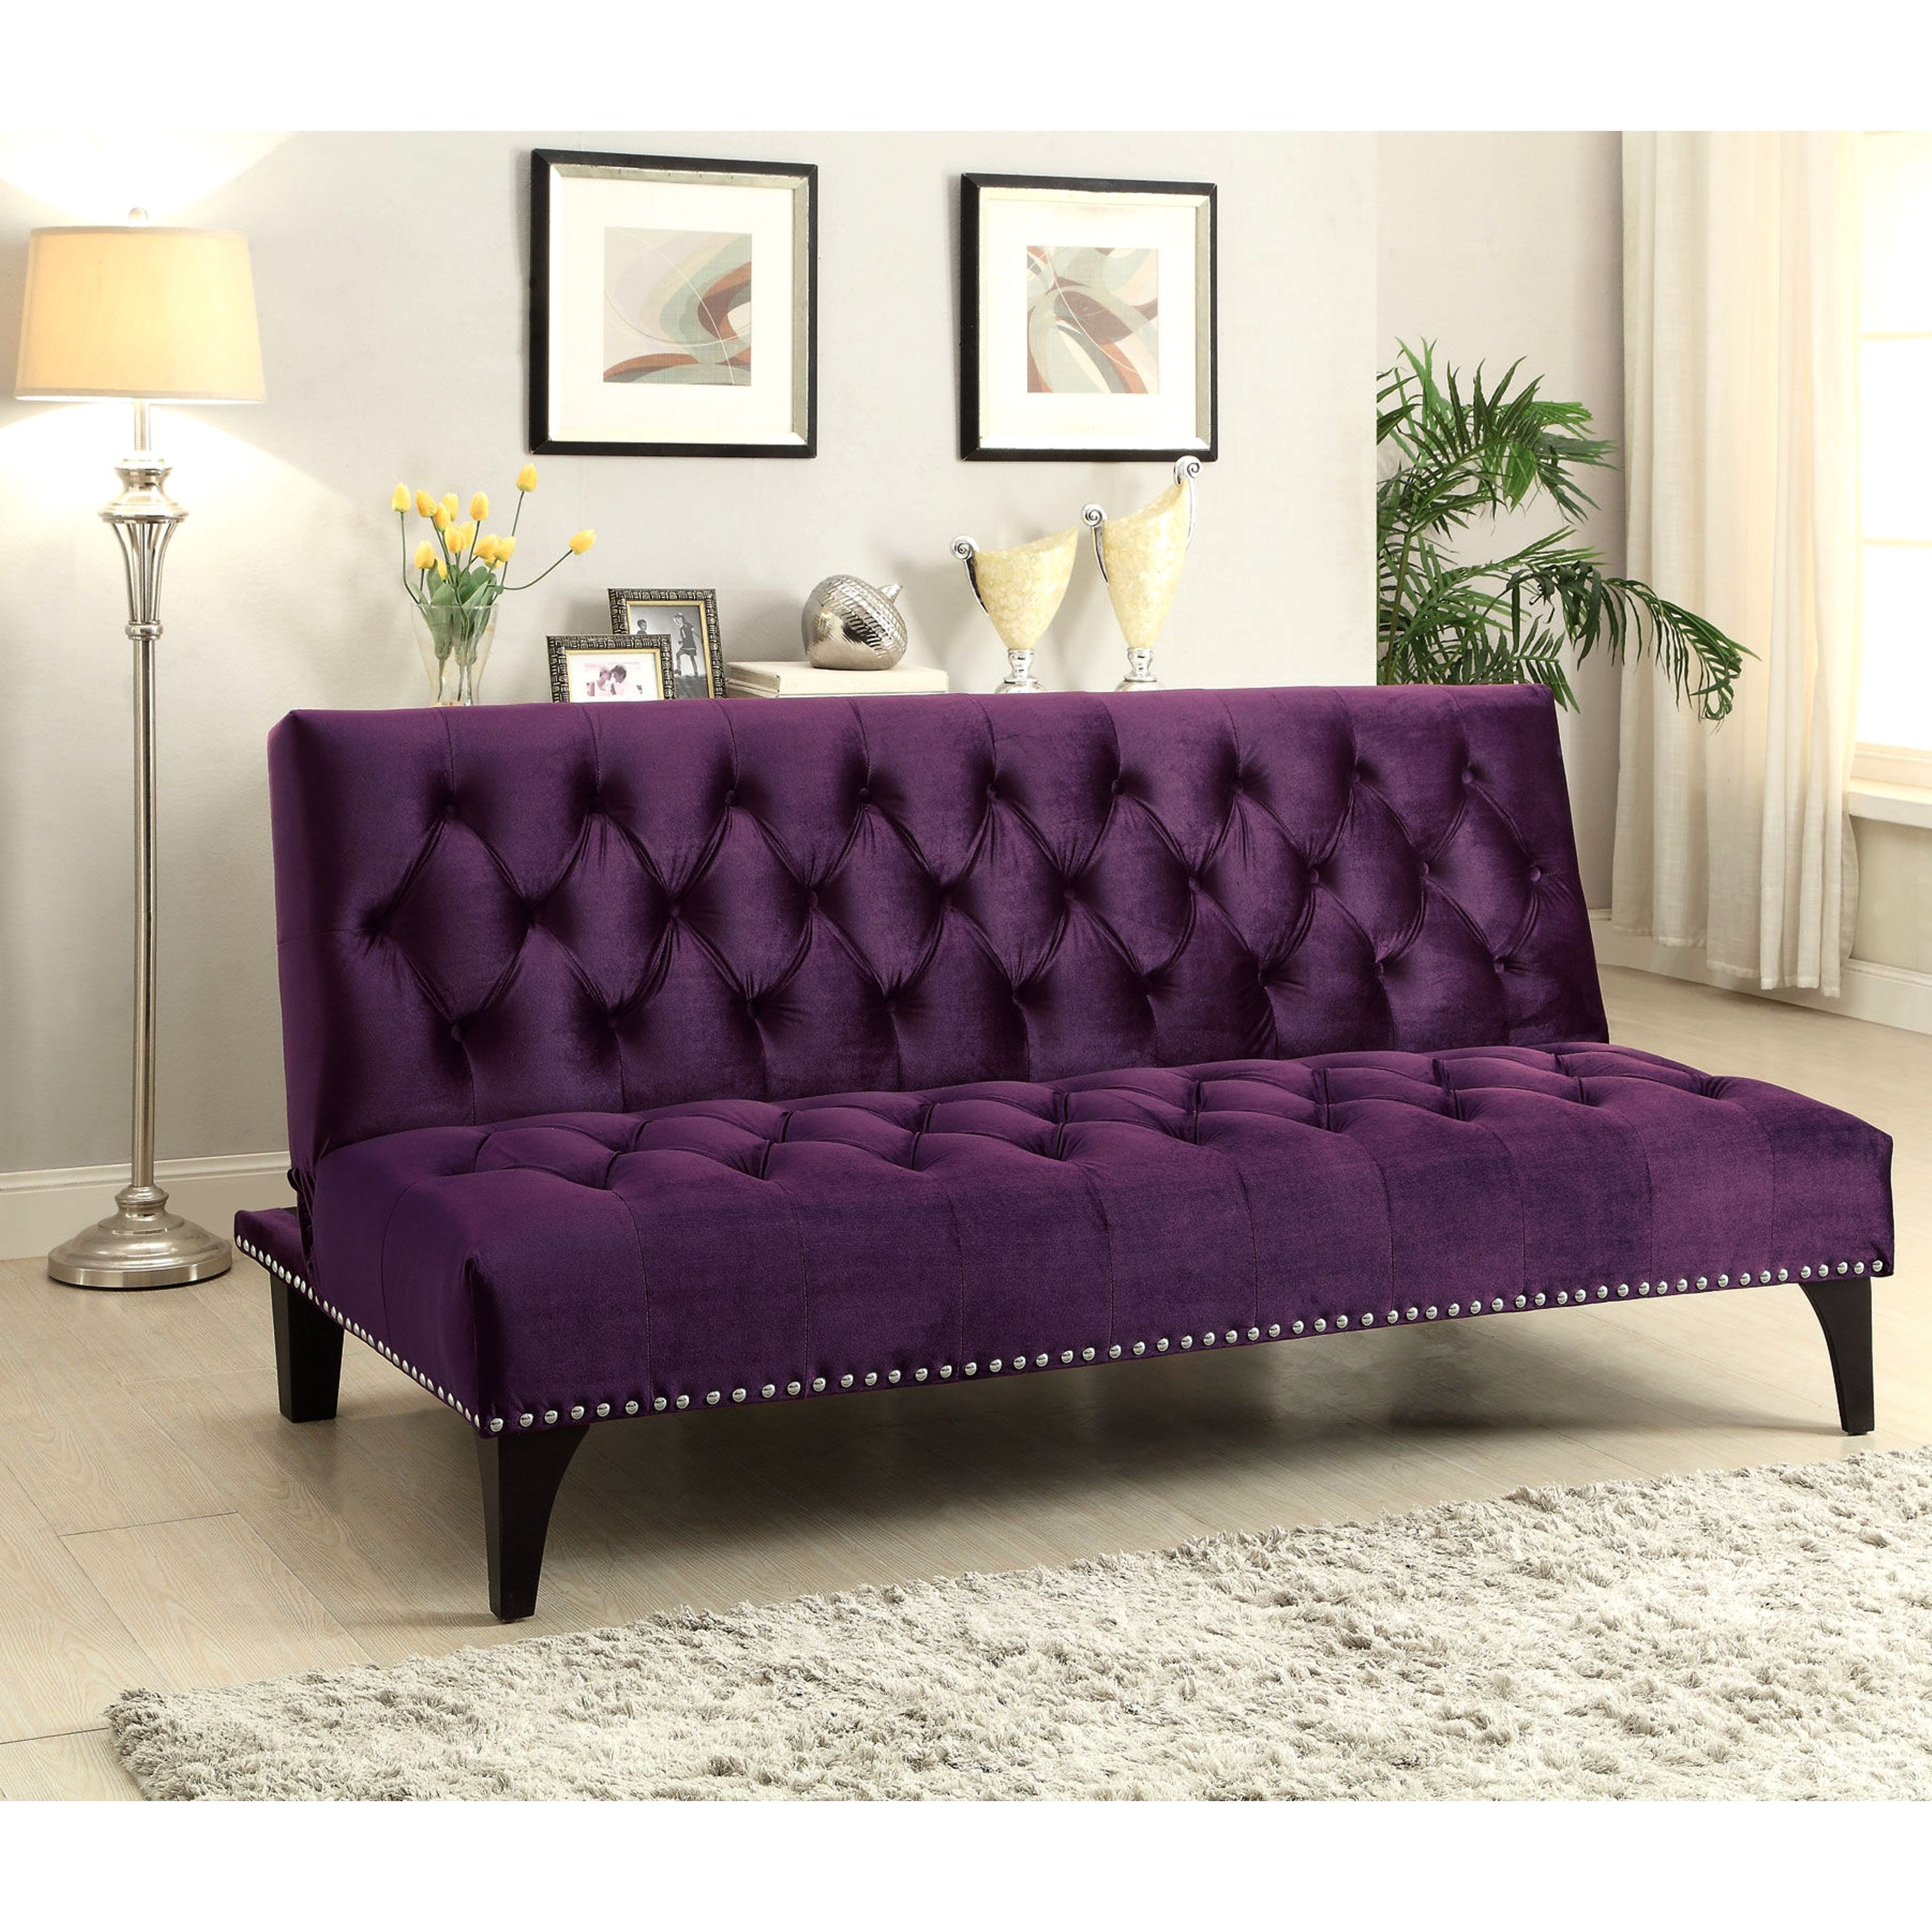 Xnron Button Tufted PurpleVelvet Sofa Bed Lounger with Na...